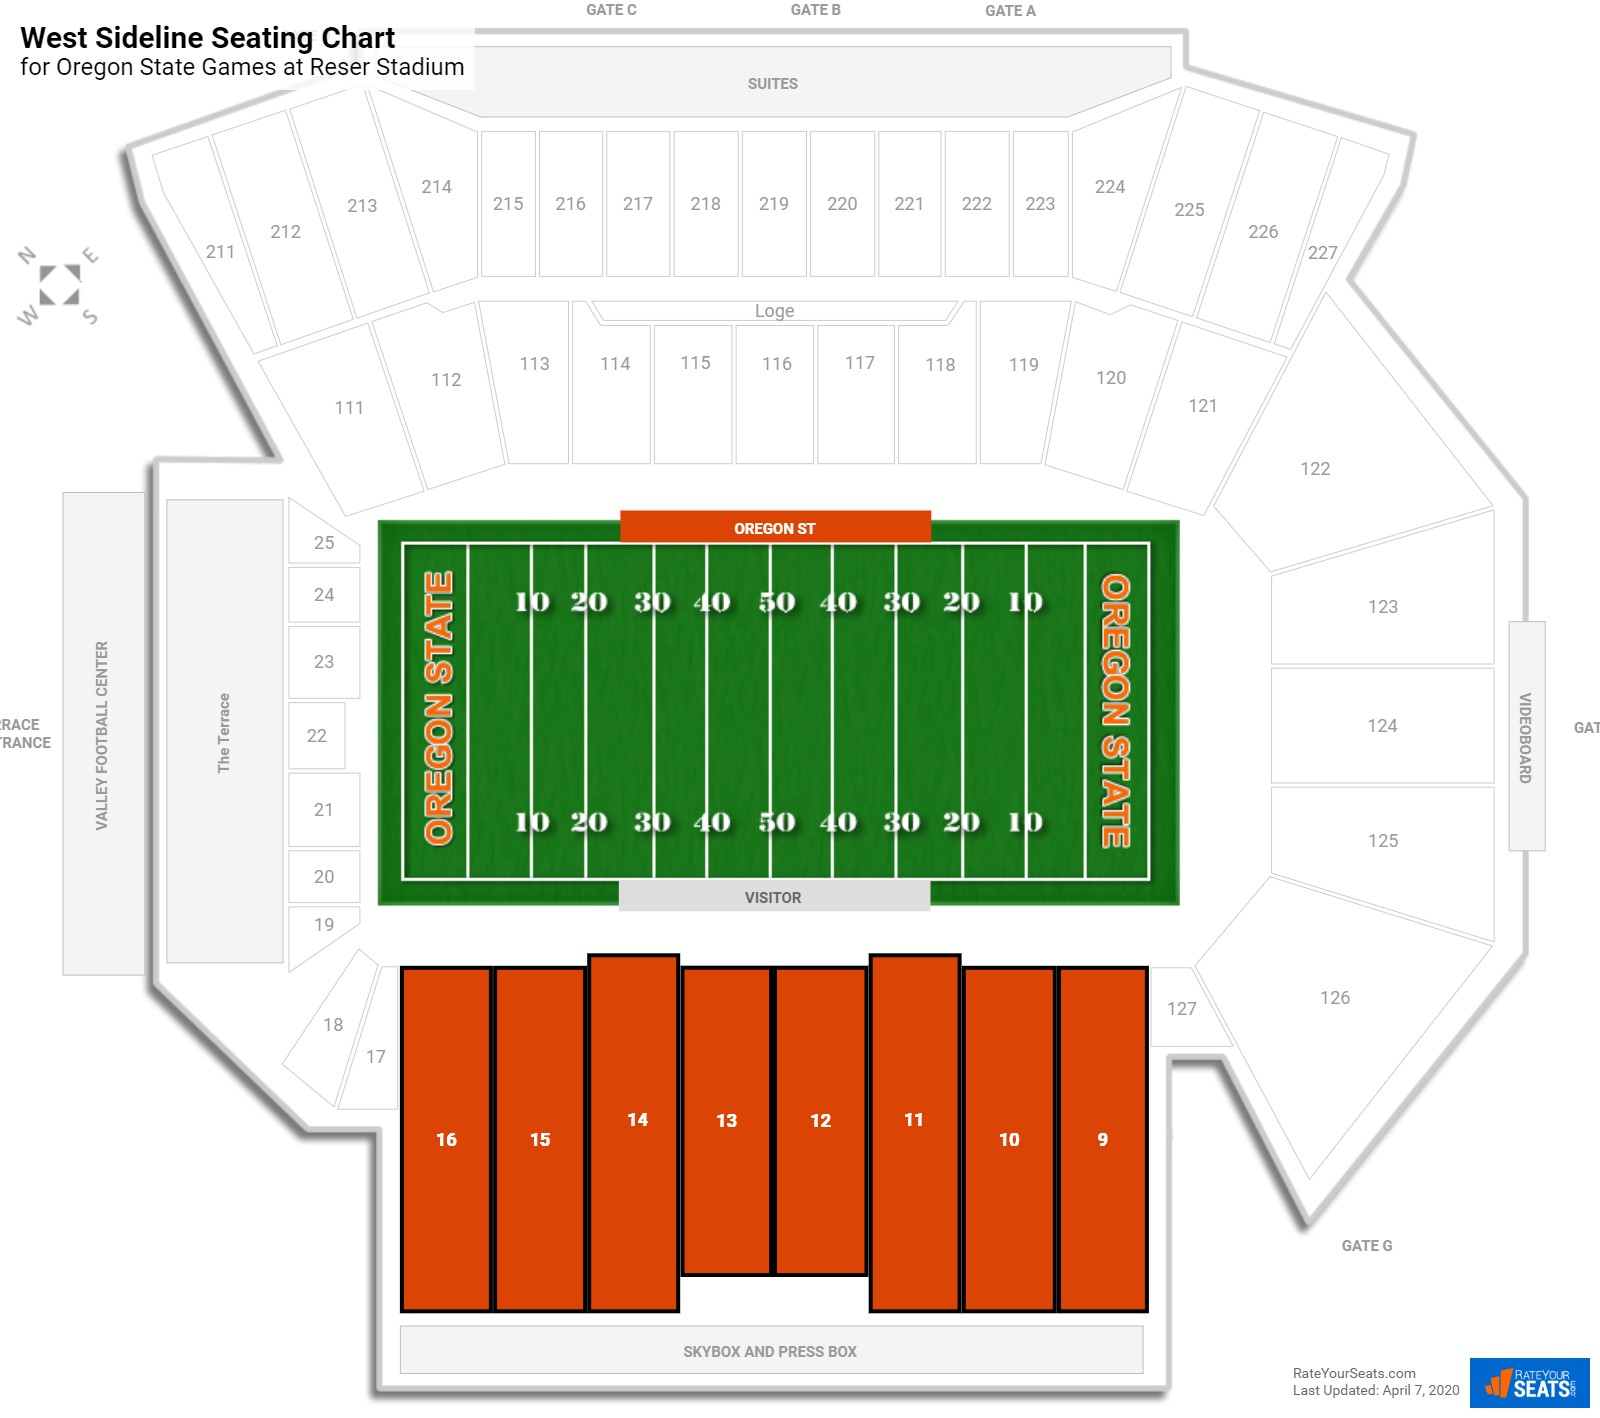 Reser Stadium West Sideline seating chart